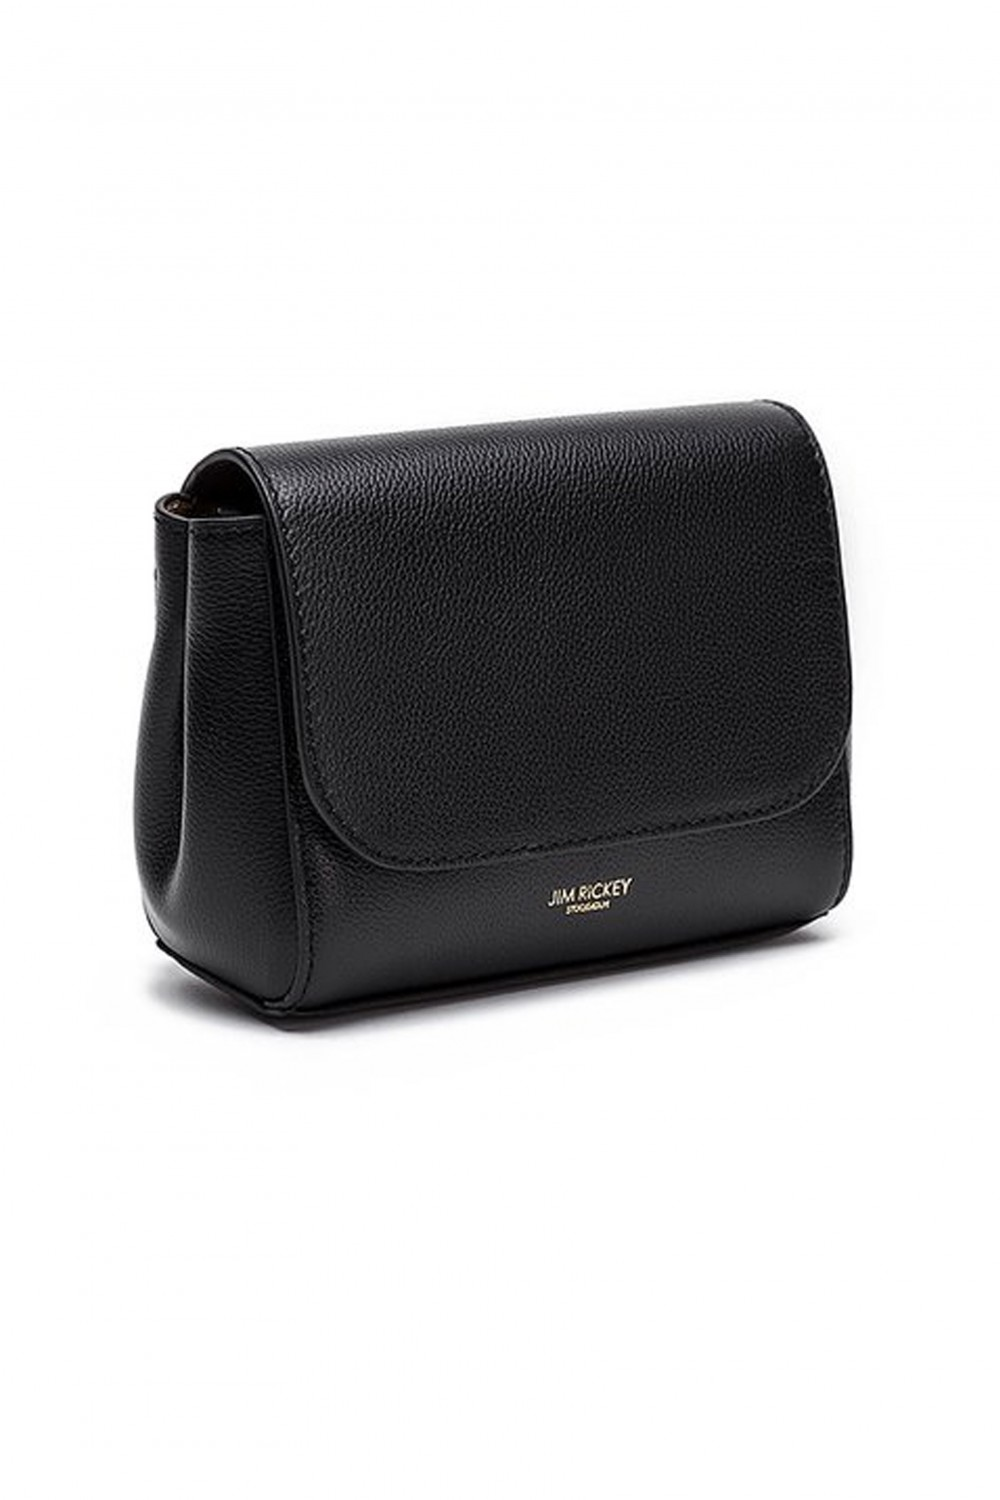 Jim Rickey Karoline Bag Black